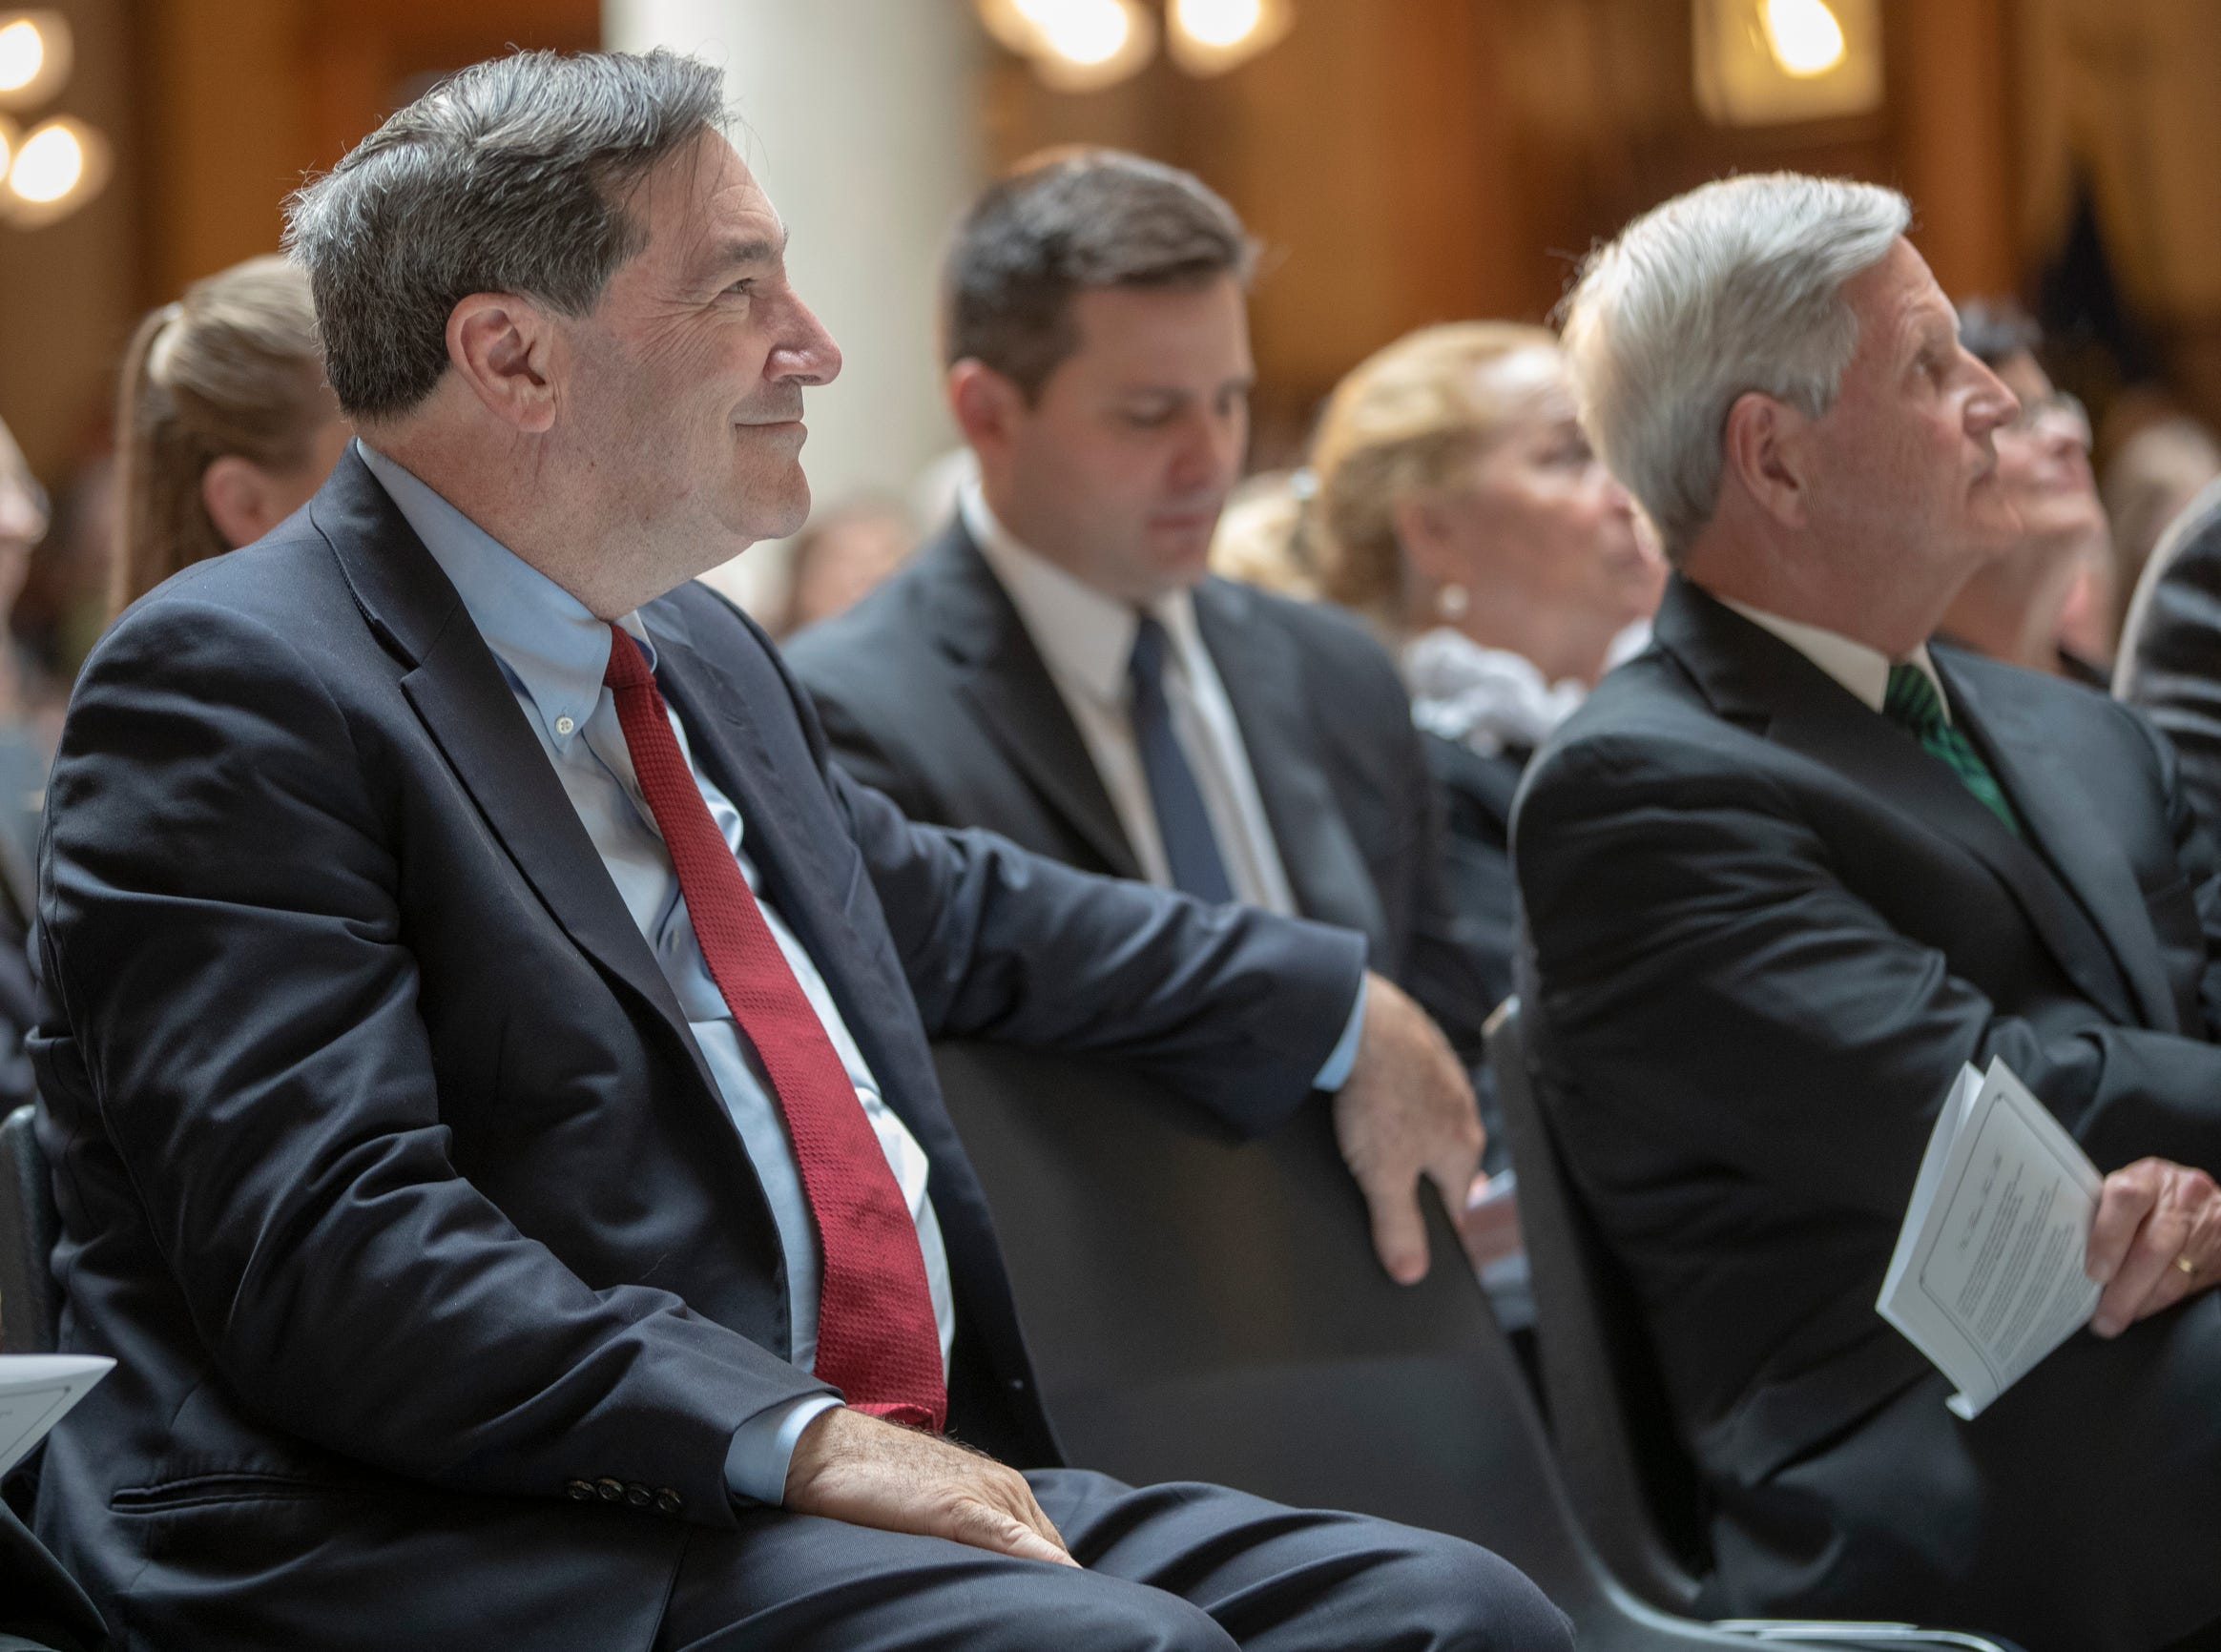 Joseph Donnelly, former U.S. Senator, during a service for Indiana's Birch Bayh, who died on March 14, and was a three-term U.S. Senator, Indiana Statehouse, Indianapolis, Wednesday, May 1, 2019.